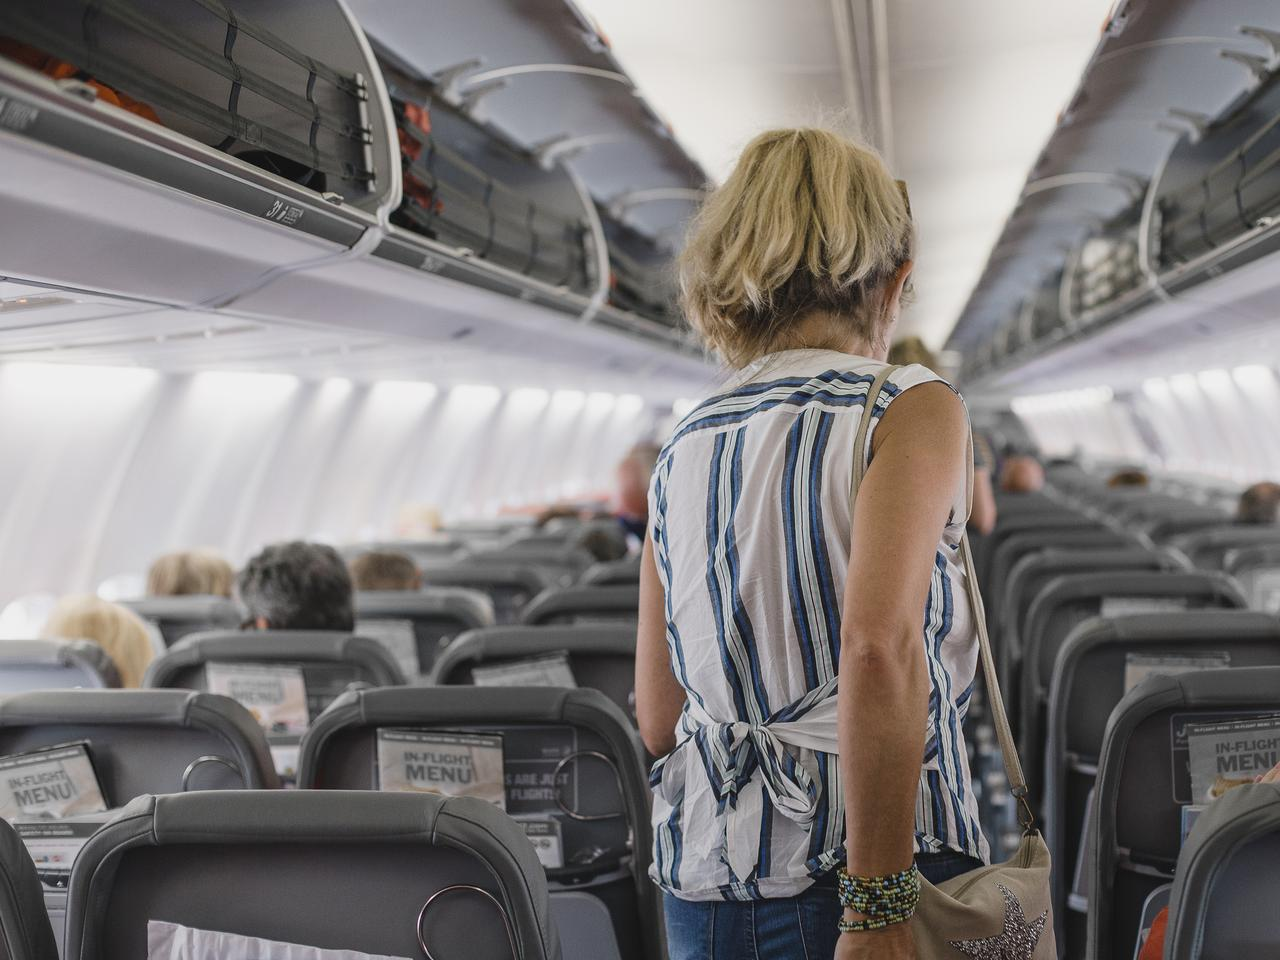 Mature woman is walking down the airplane aisle to her designated seat.